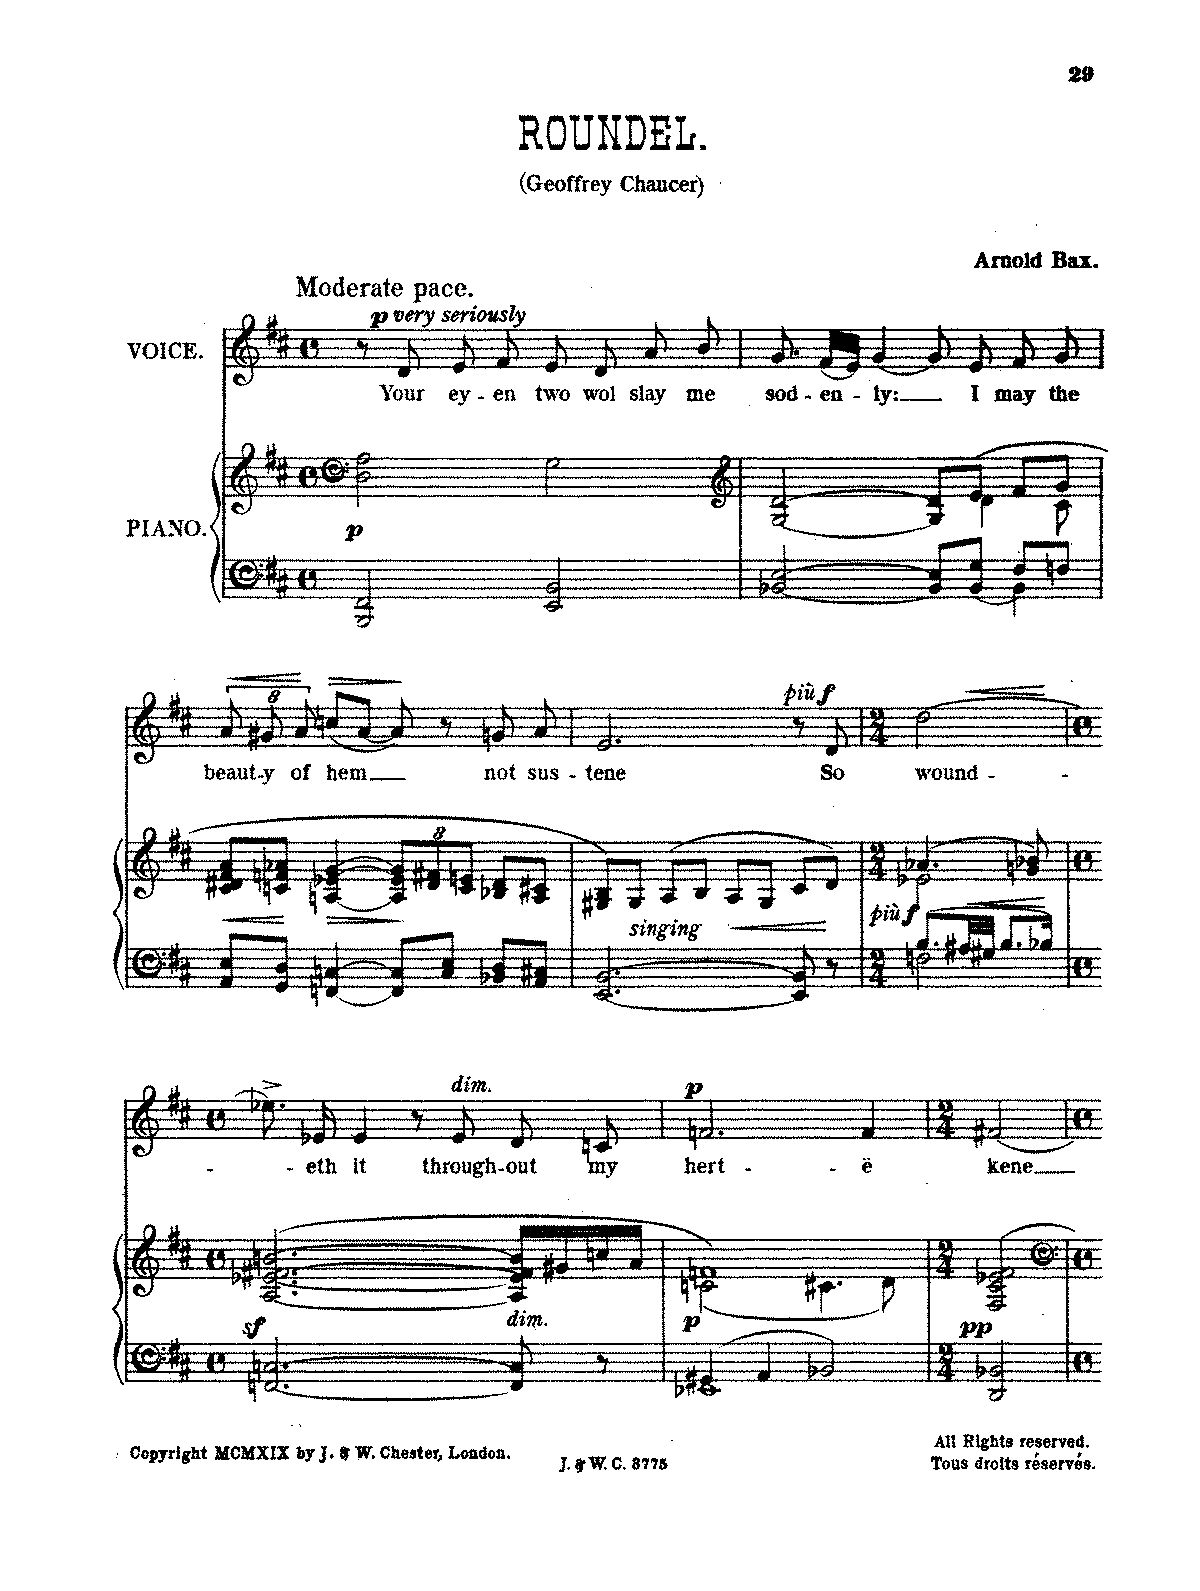 PMLP46215-Bax - Roundel (voice and piano).pdf